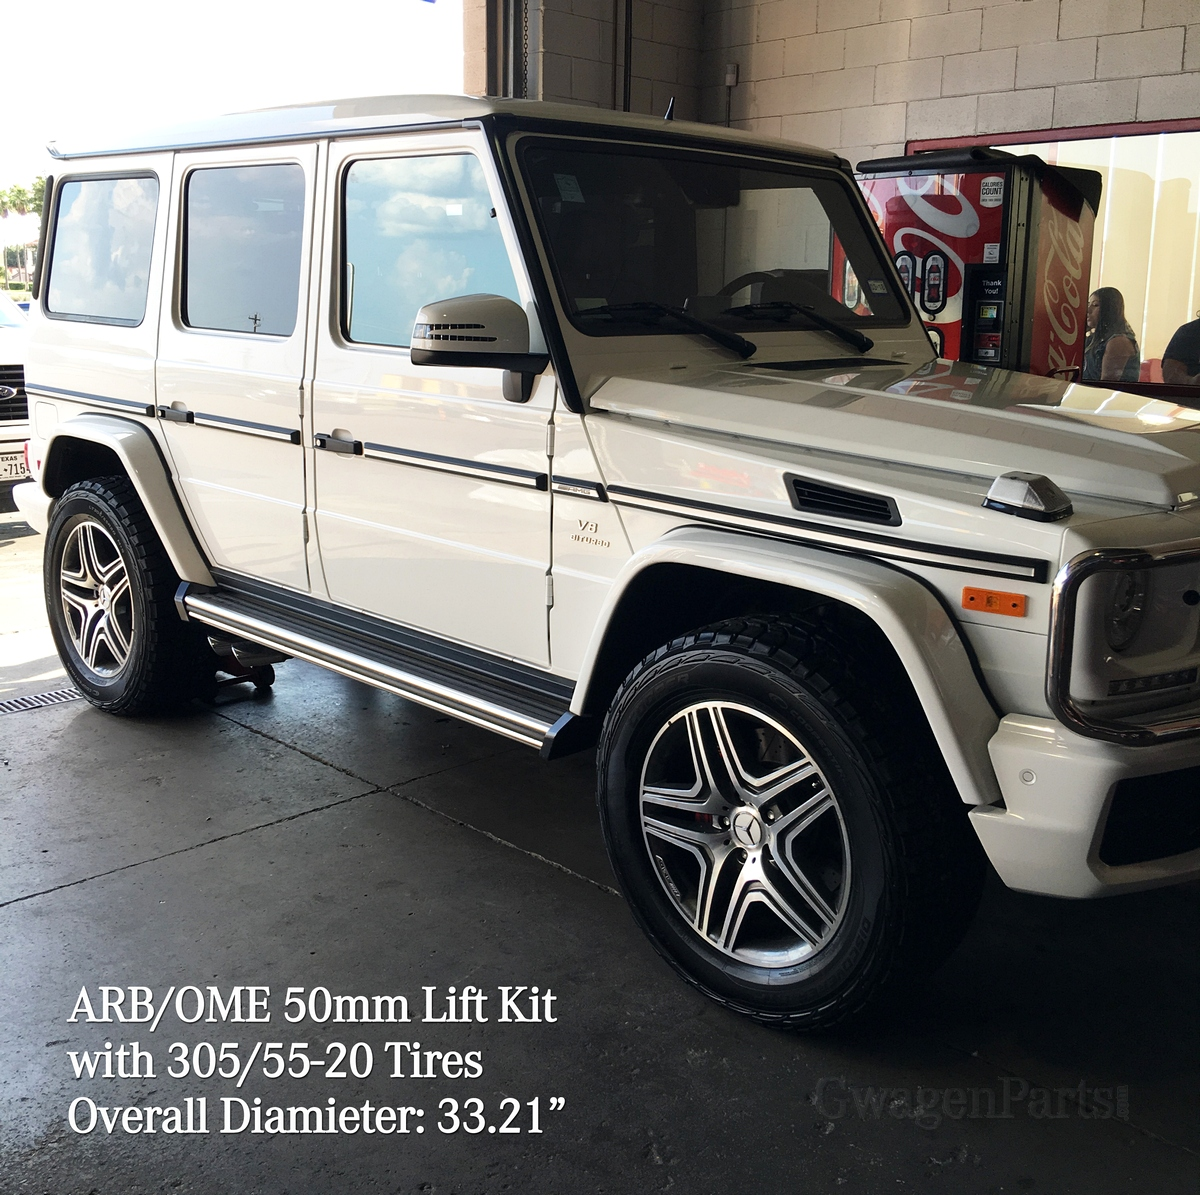 Mercedes g class w463 arb ome 50mm lift kit no front for Mercedes benz g500 parts accessories